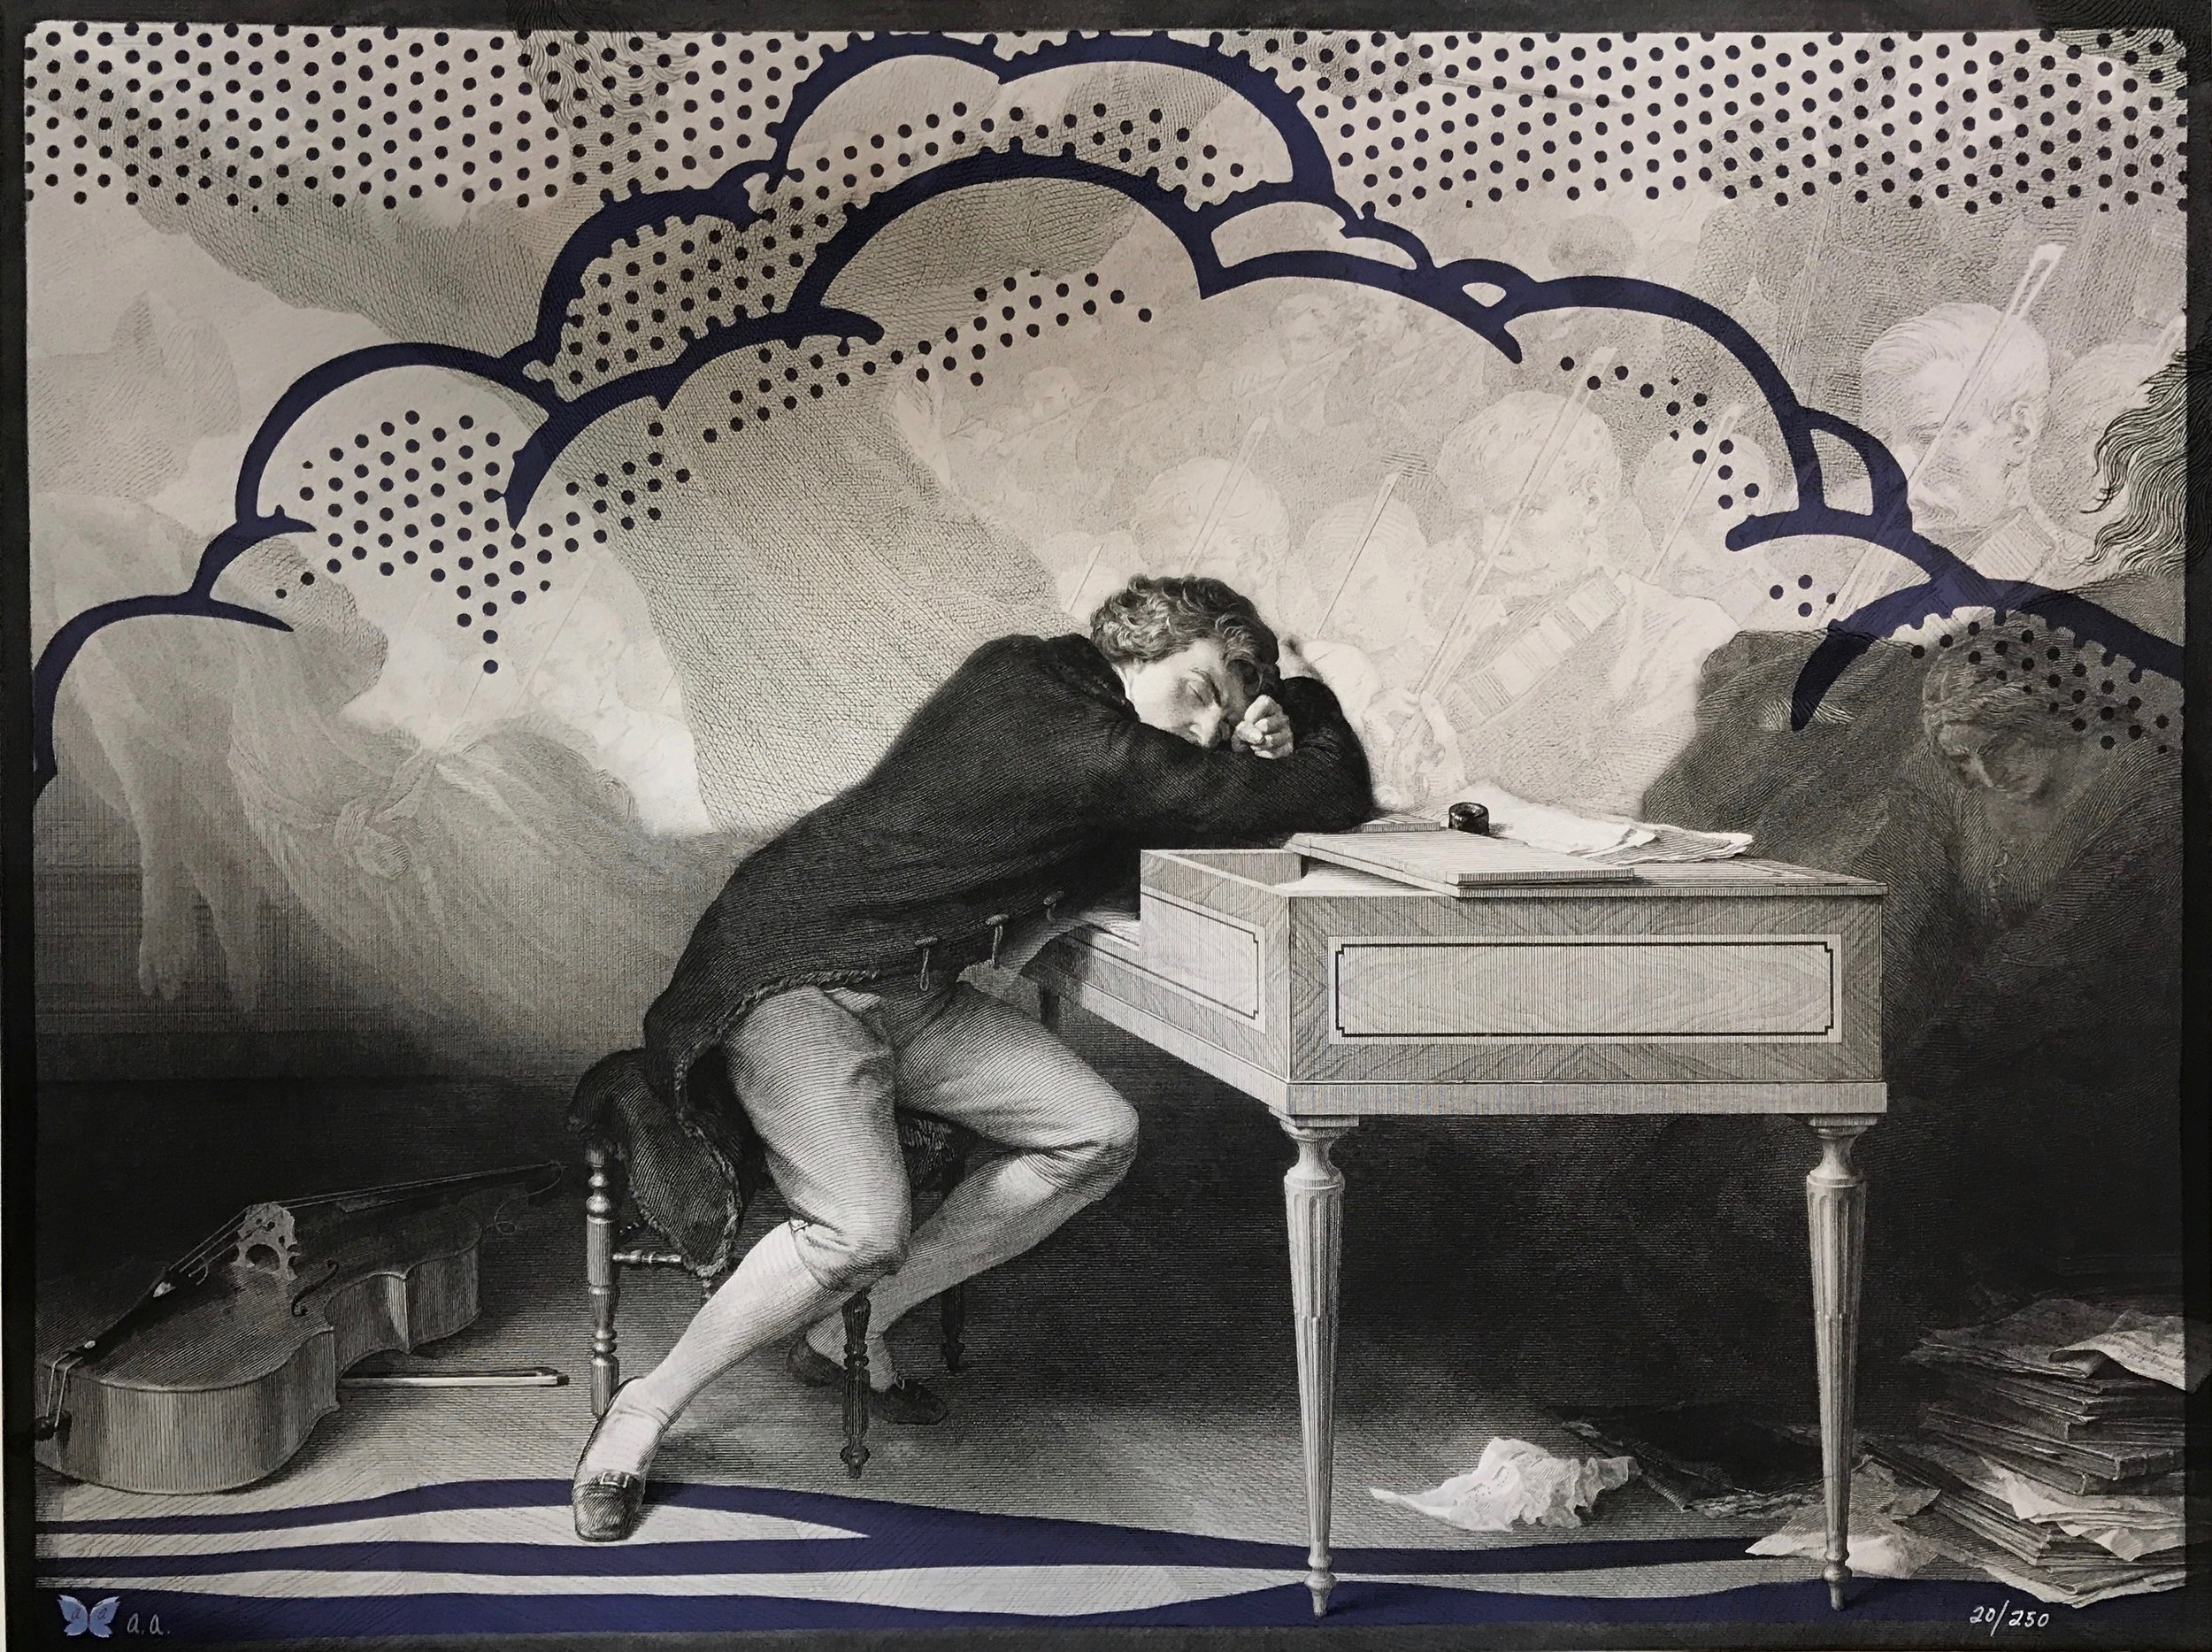 Title: Beethoven in a dream Year: 2016 Medium: PIGMENT PRINT Image size: 24 X 18 in